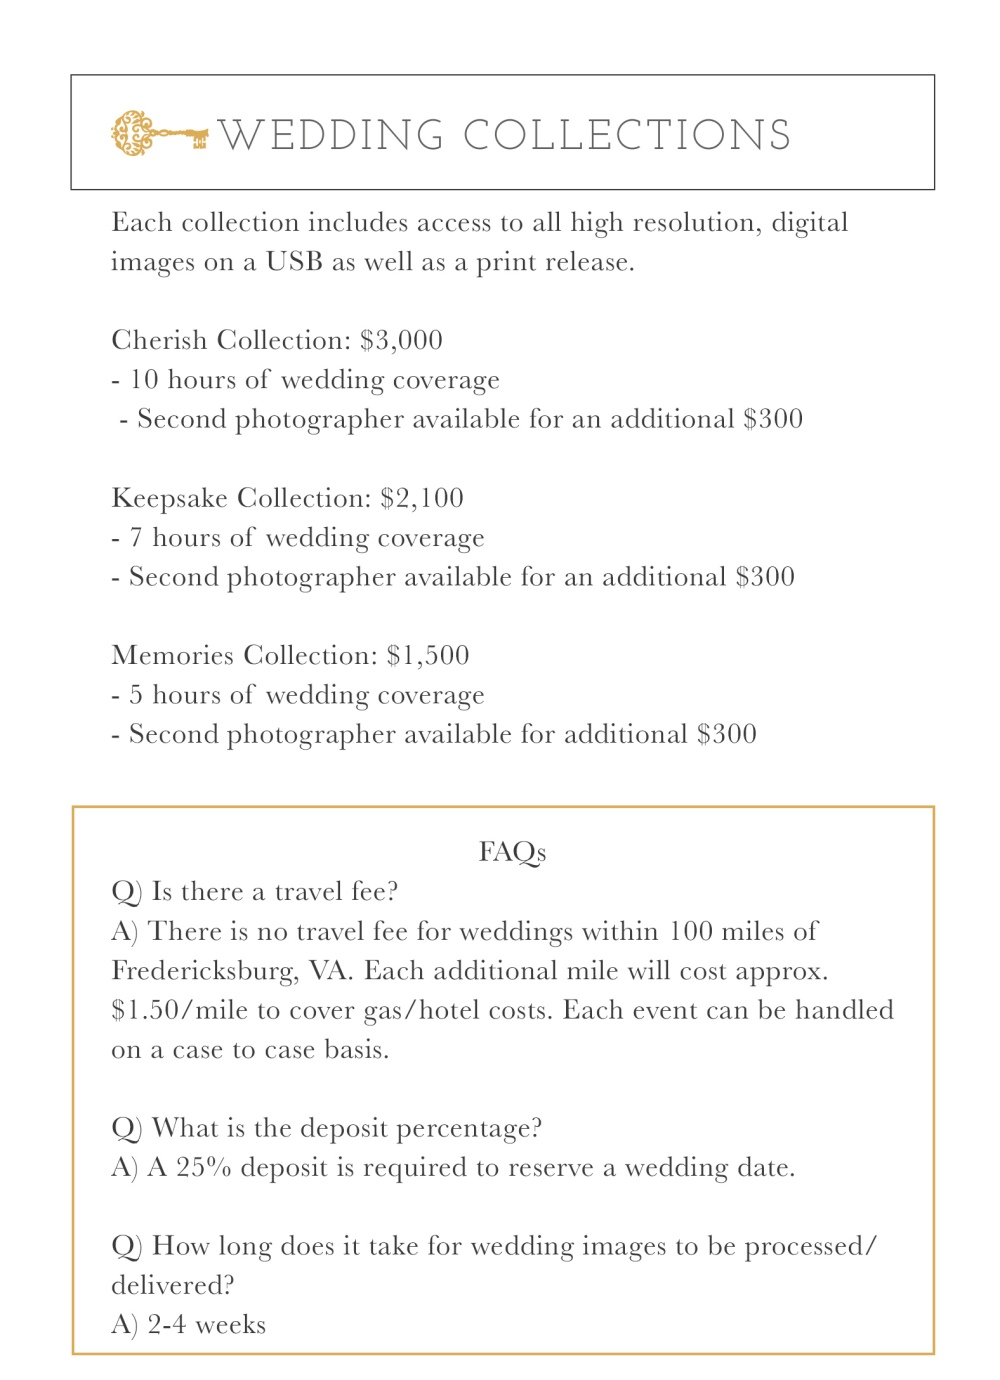 Wedding Collection Pricing_AHP 2 2017